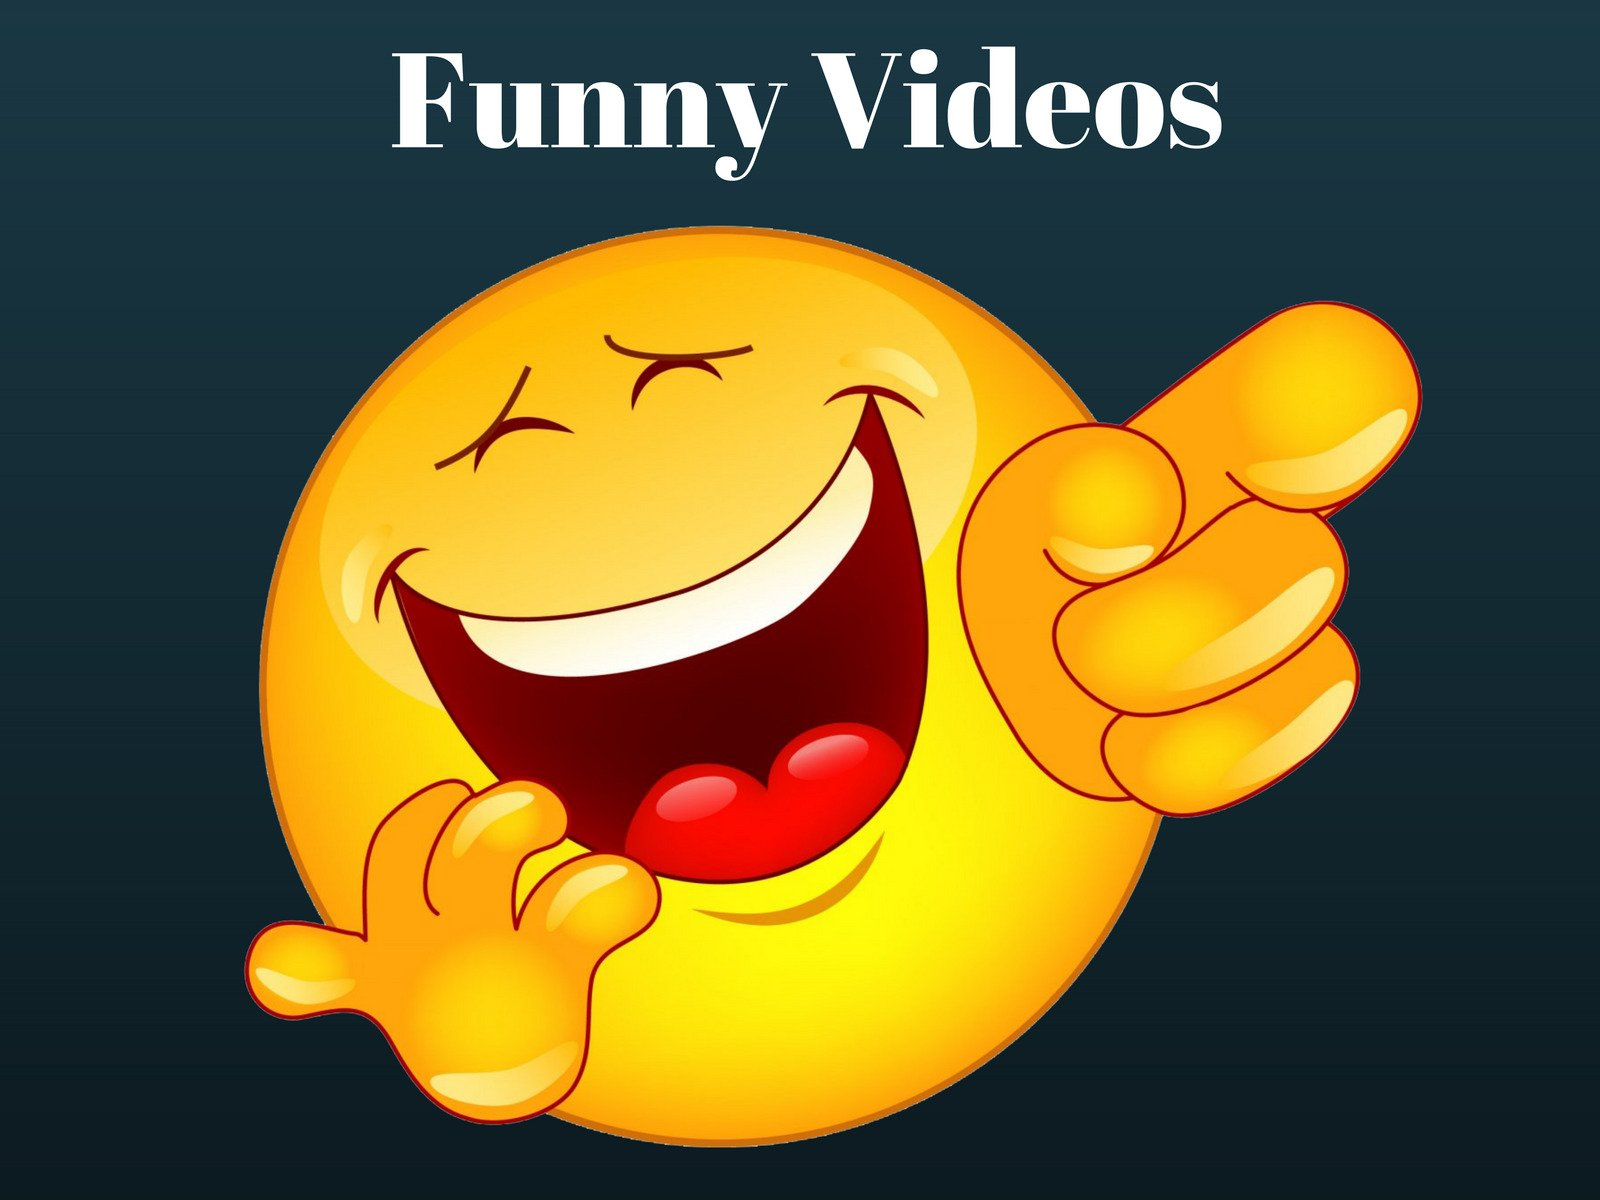 Clip: Funny Videos